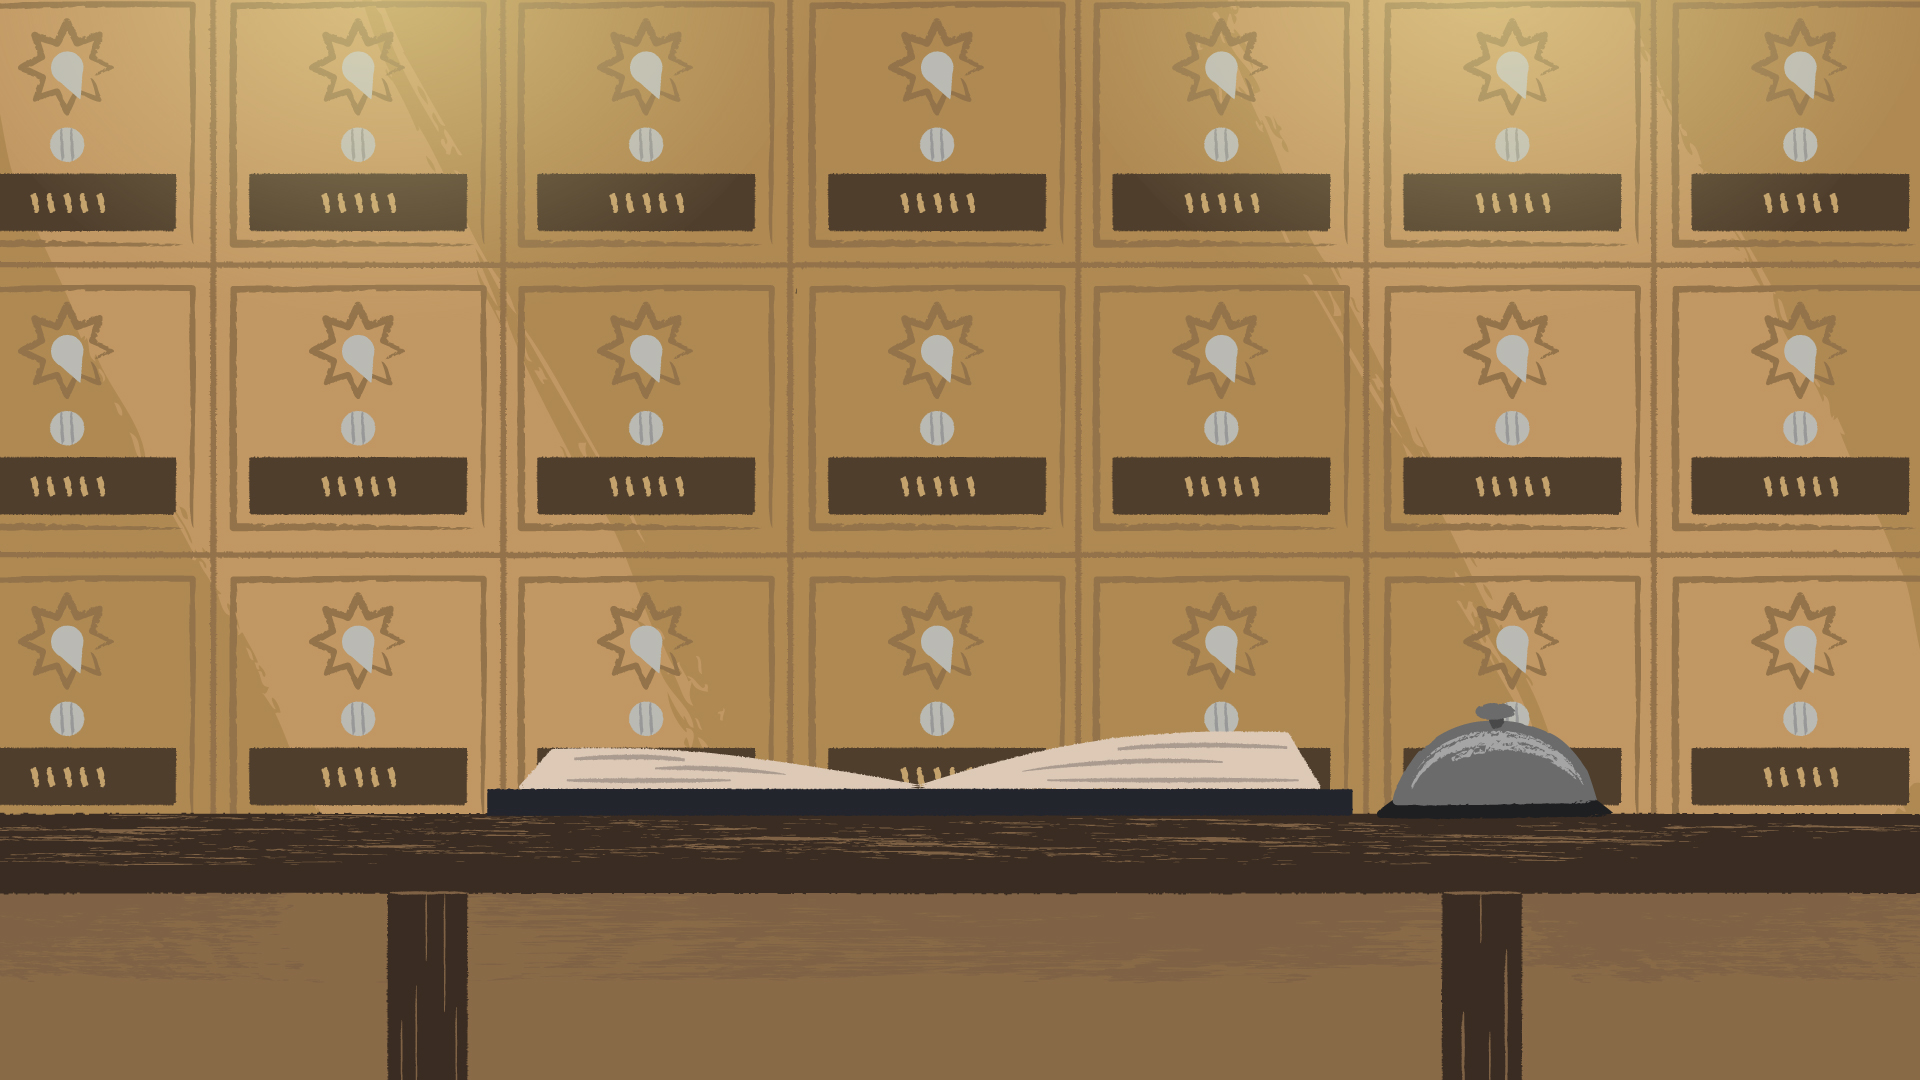 Production illustration of foreground counter and mailboxes background